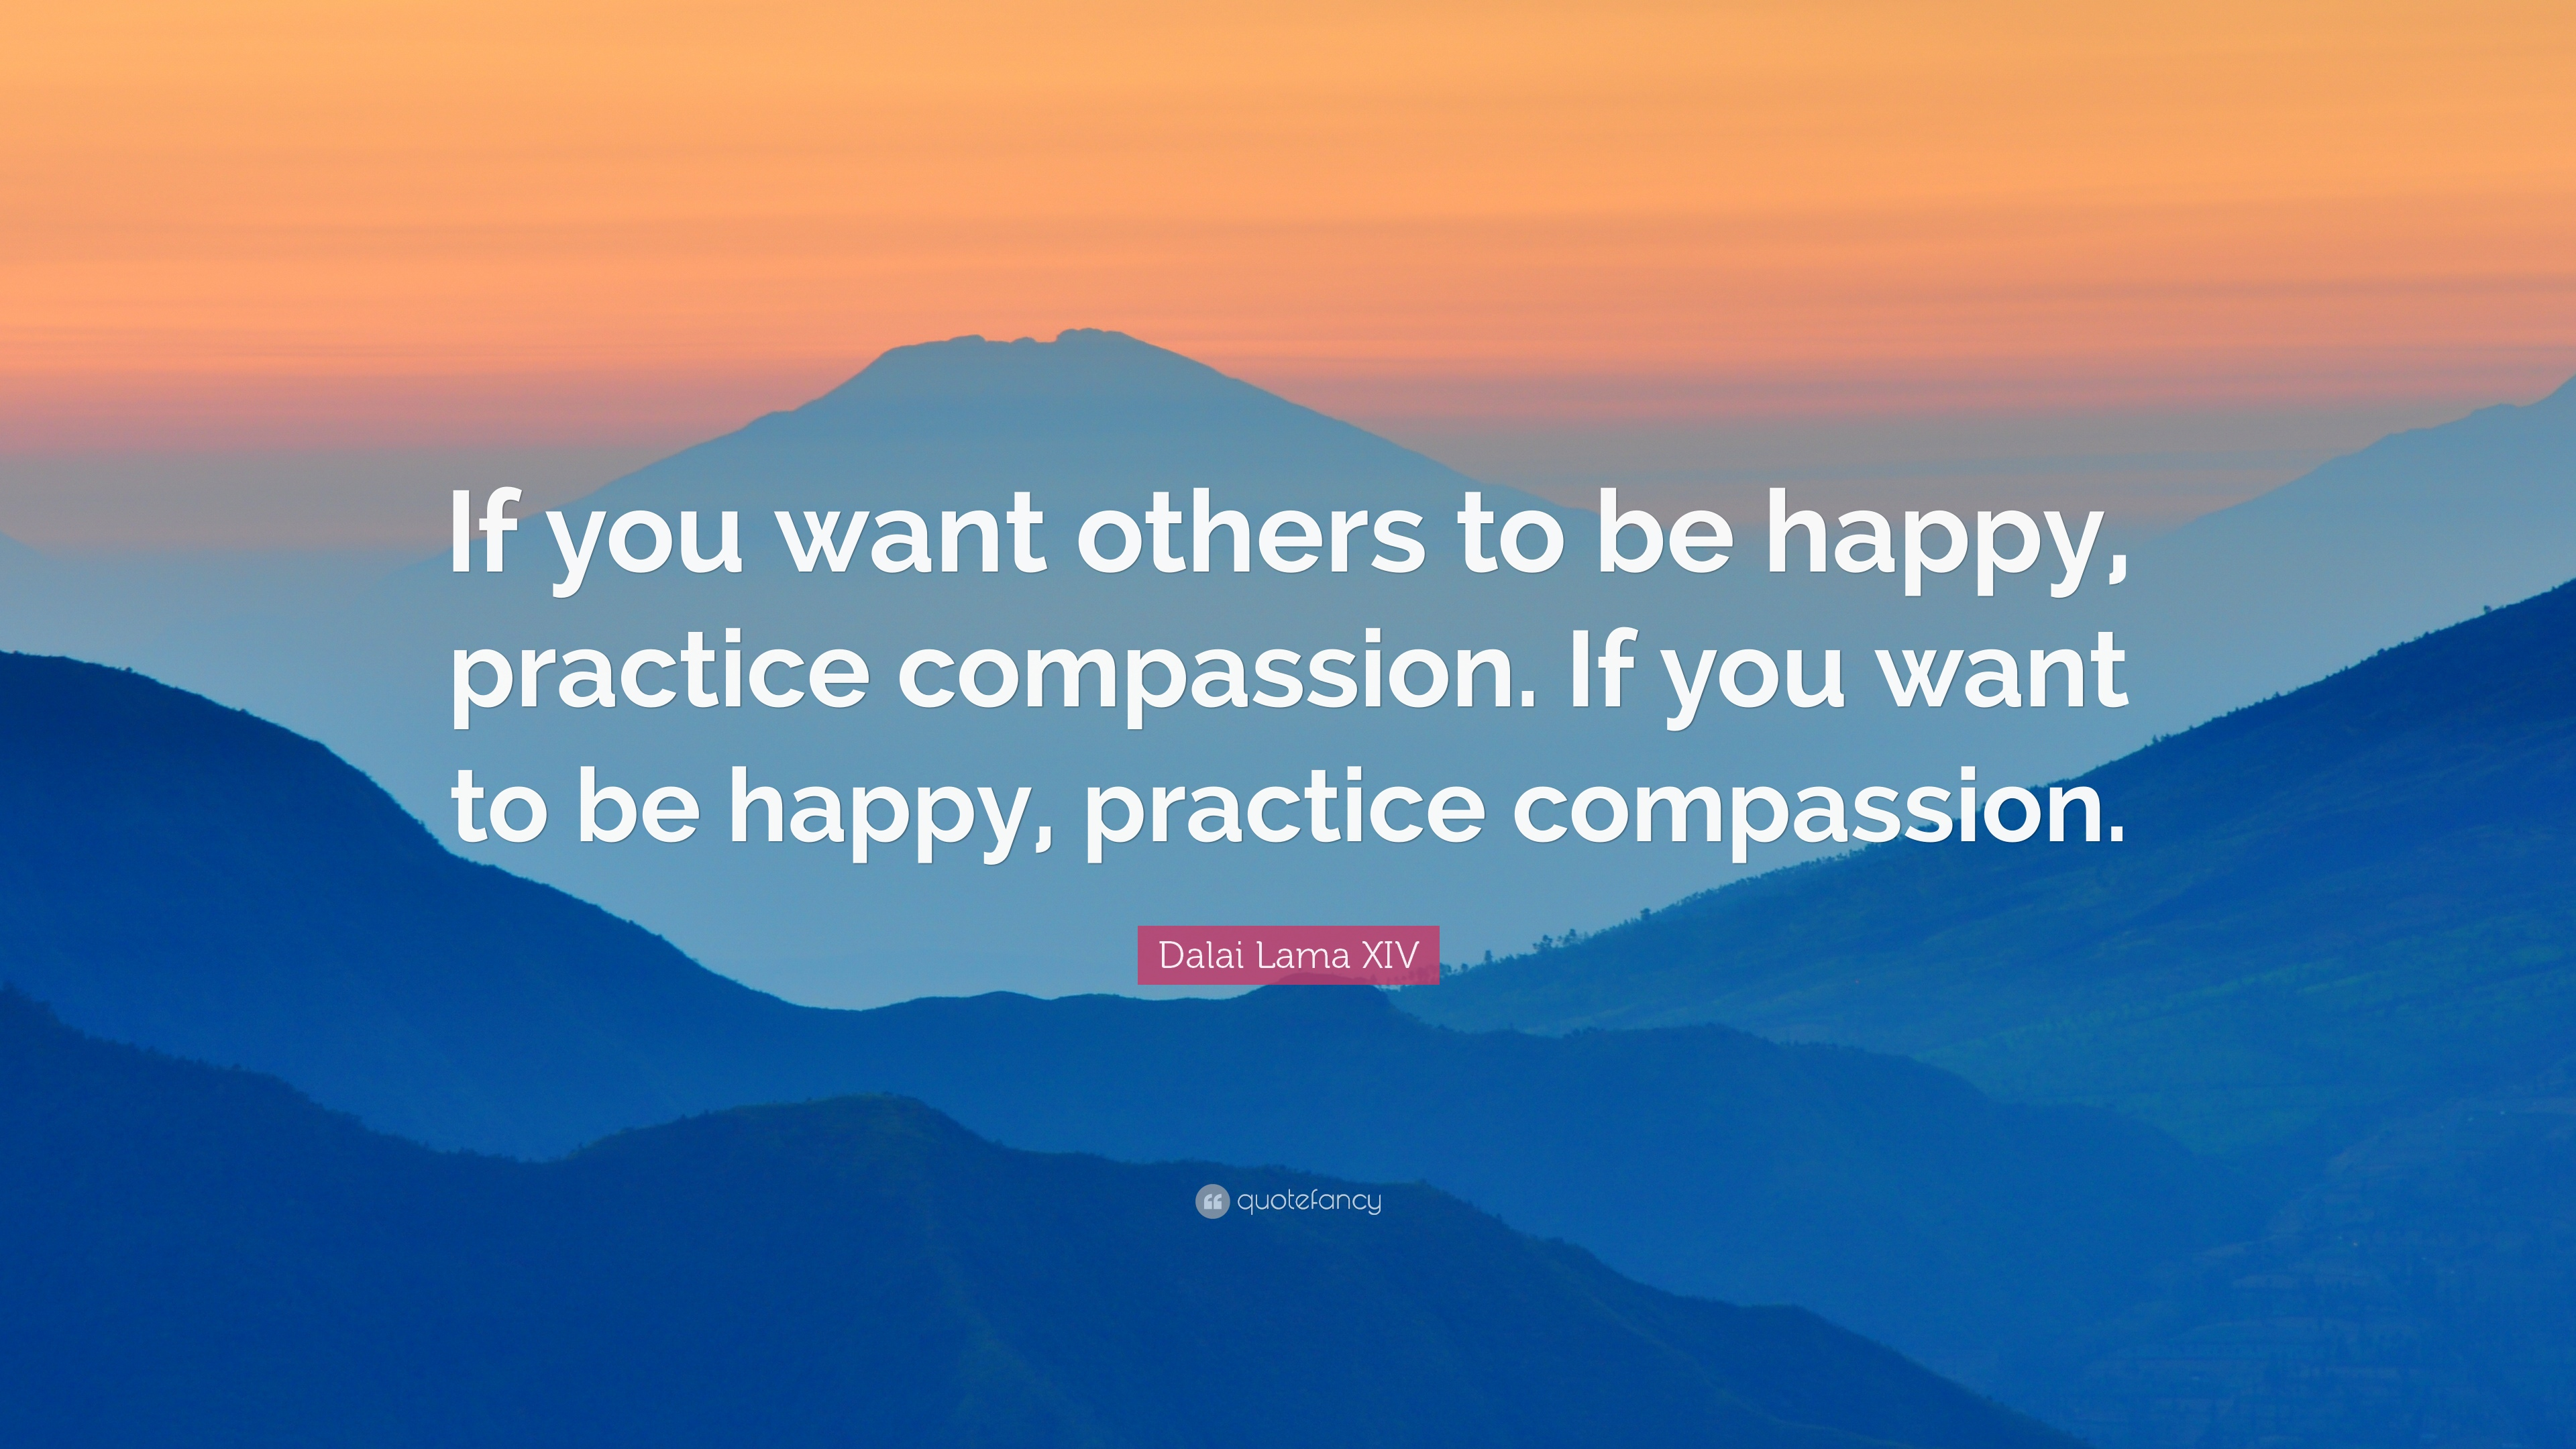 Dalai Lama Xiv Quote: '� If You Want Others To Be Happy, Practicepassion